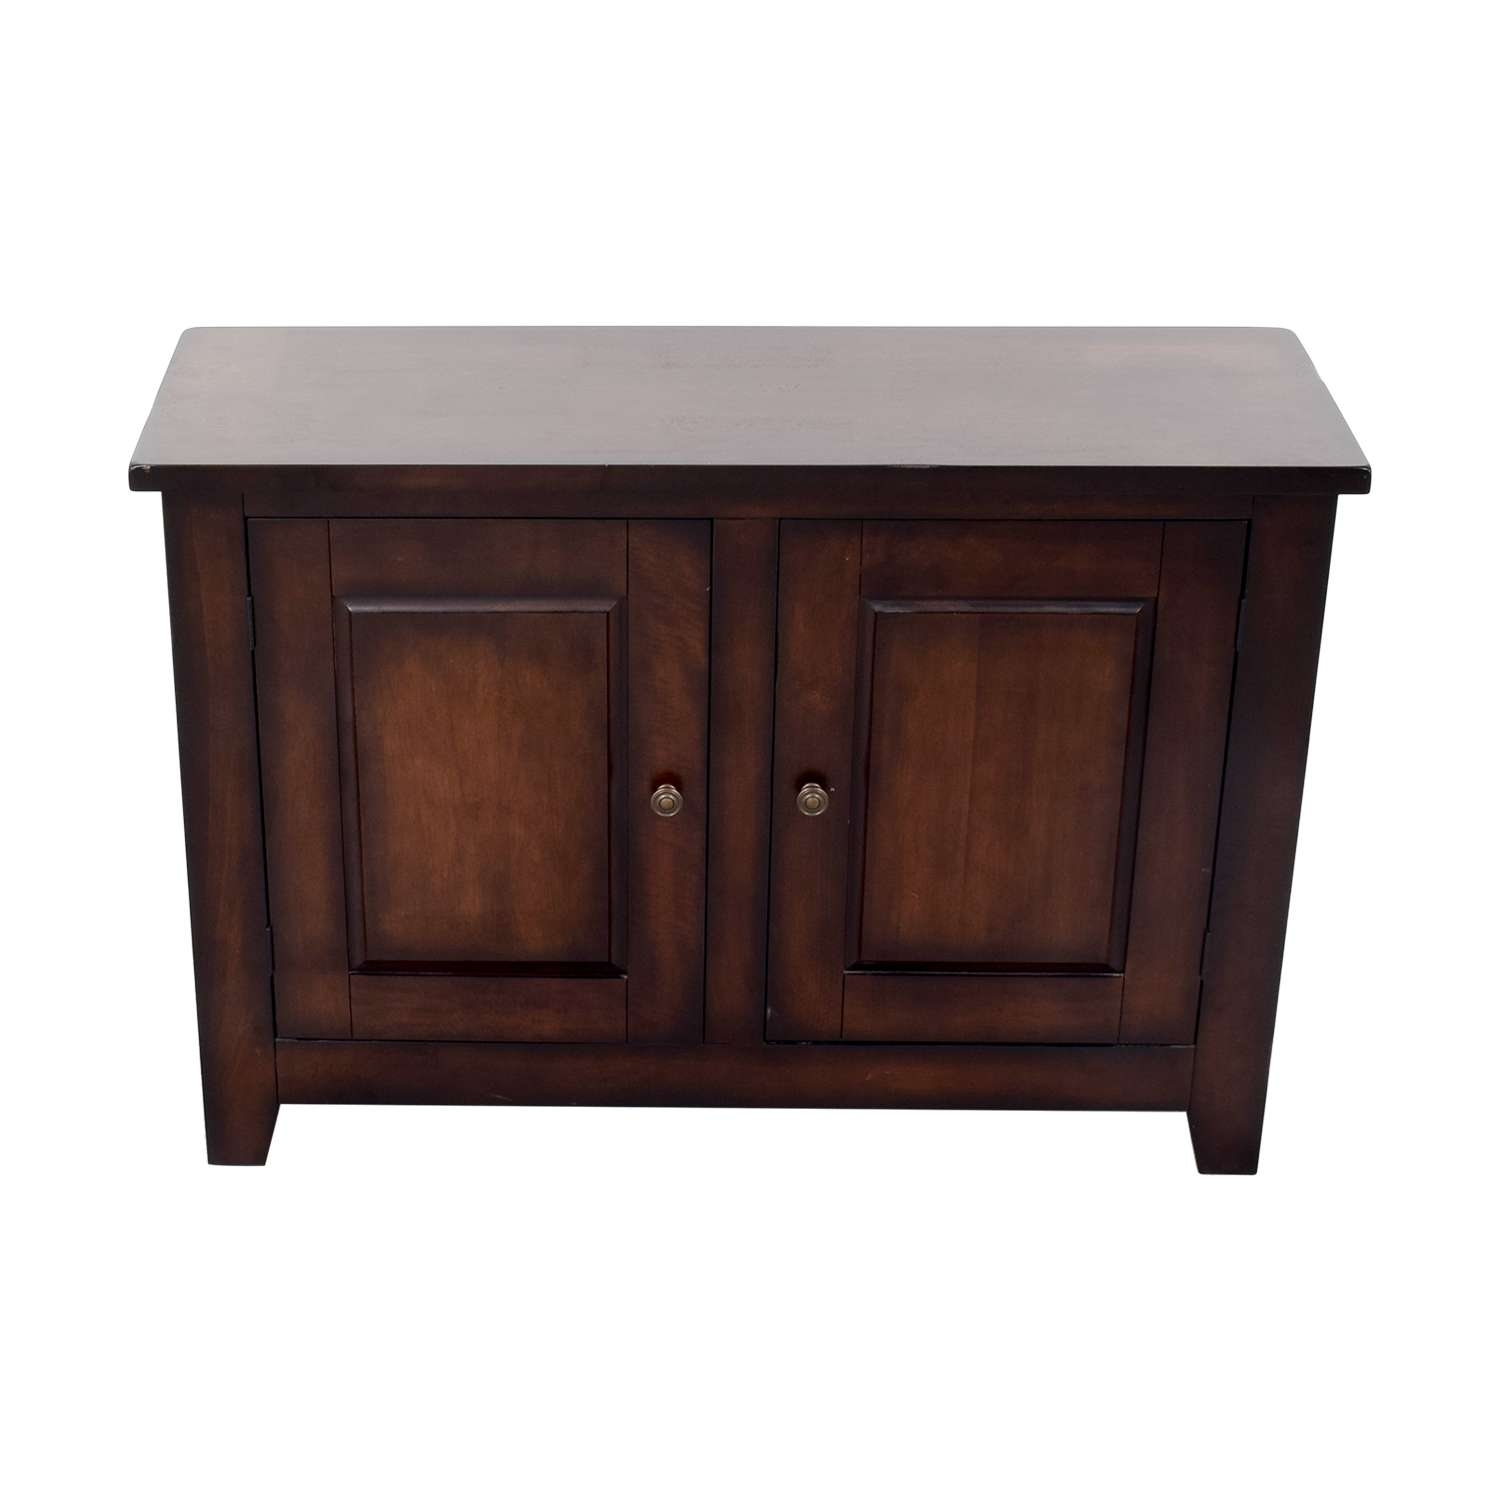 Second Hand Cabinets & Sideboards Under $500 Throughout Credenza Sideboards (View 18 of 20)